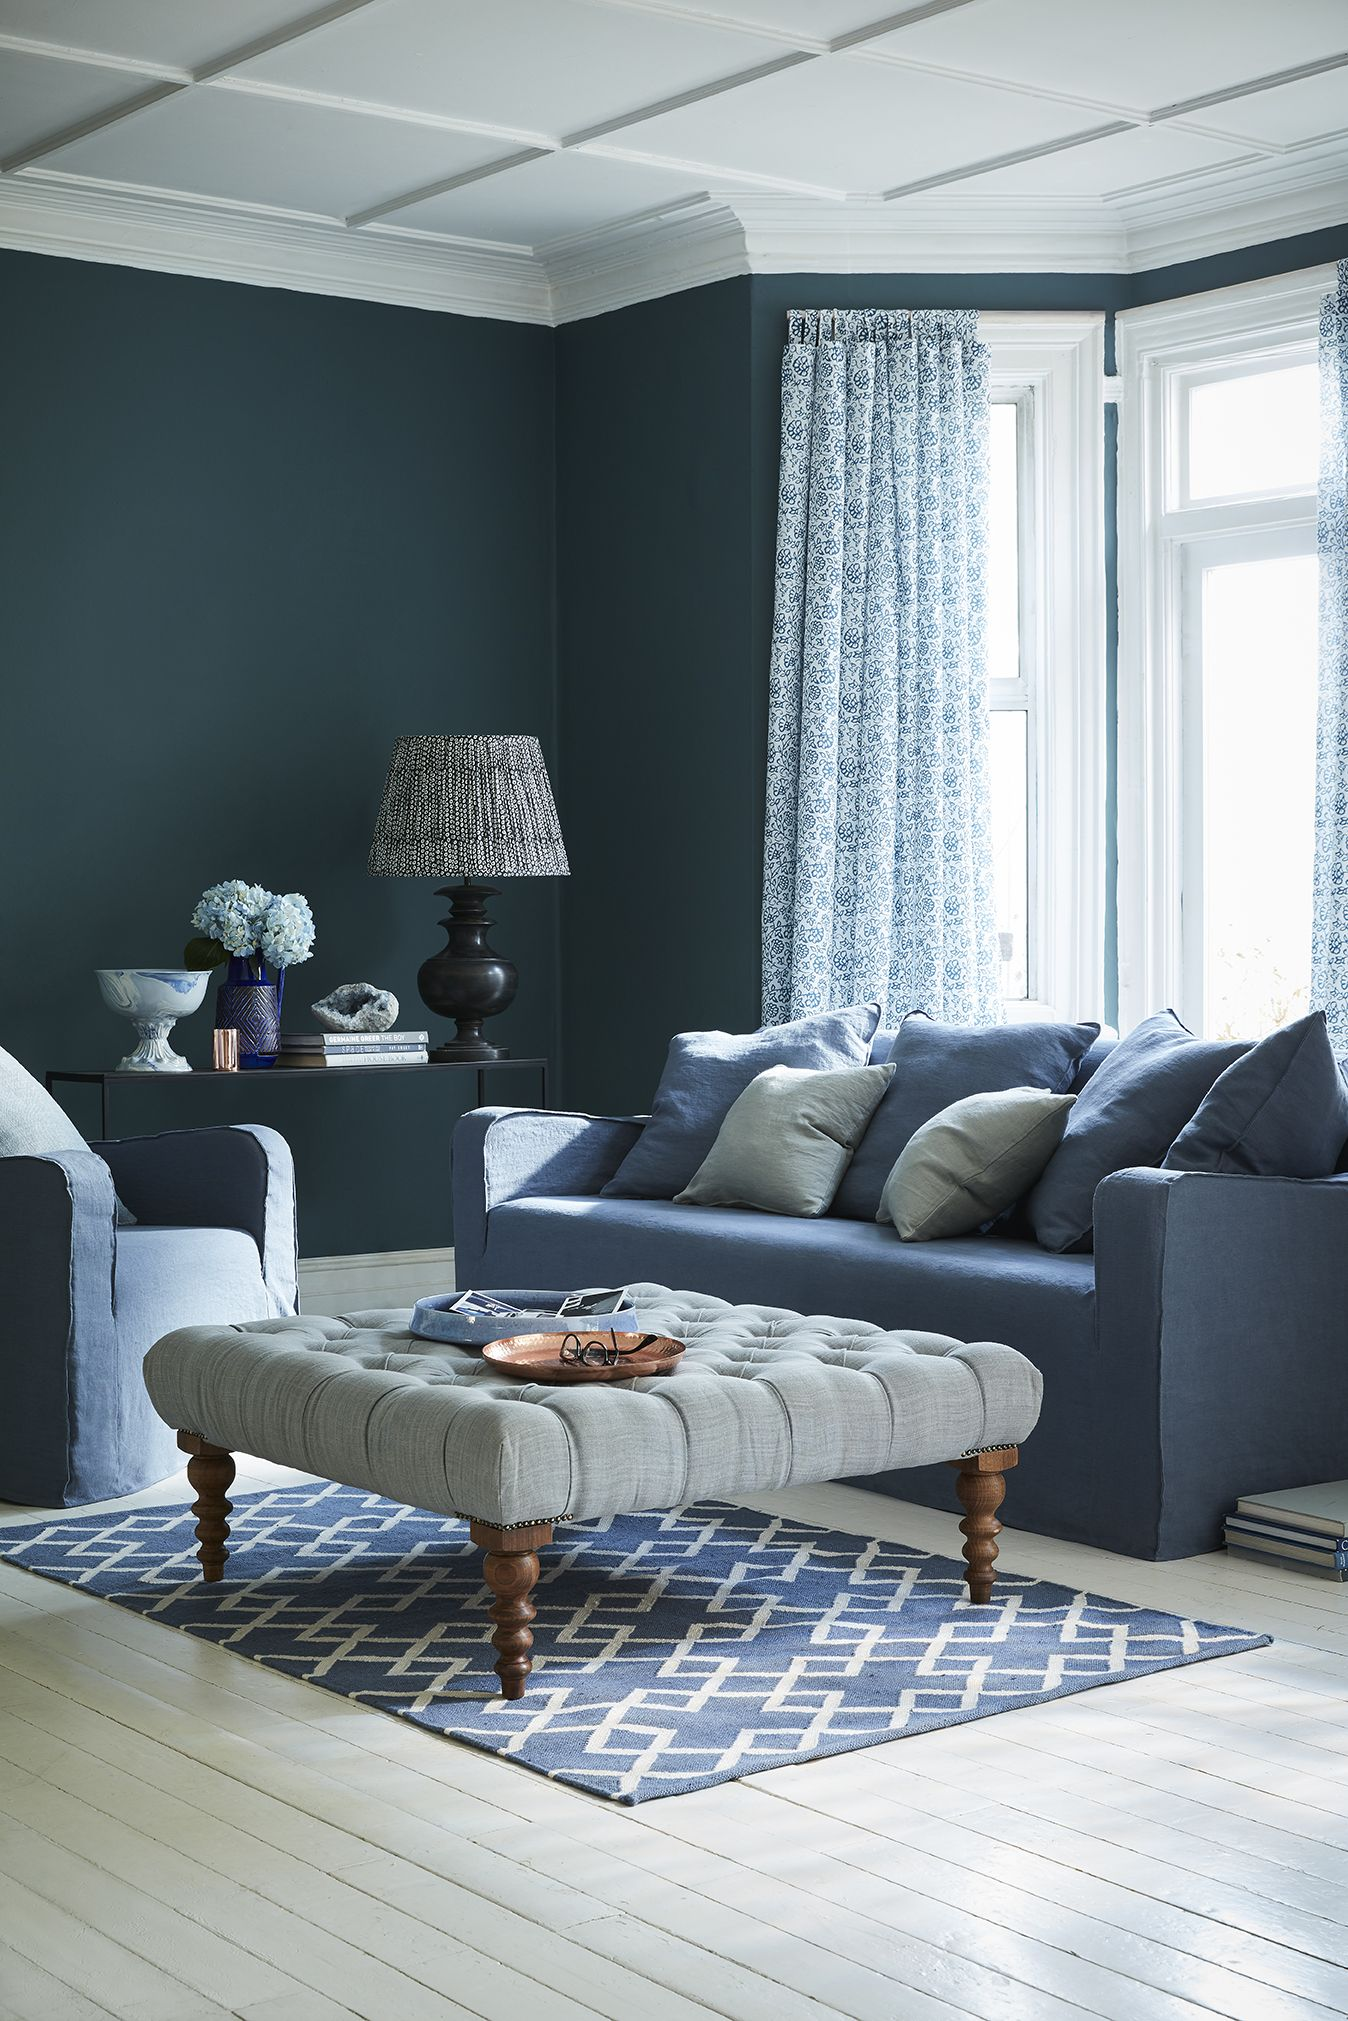 A Green Blue And Grey Colour Scheme For A Living Room It S A Darker Colour Palette For A Sitting Roo Living Room Color Schemes Living Room Colors Living Room